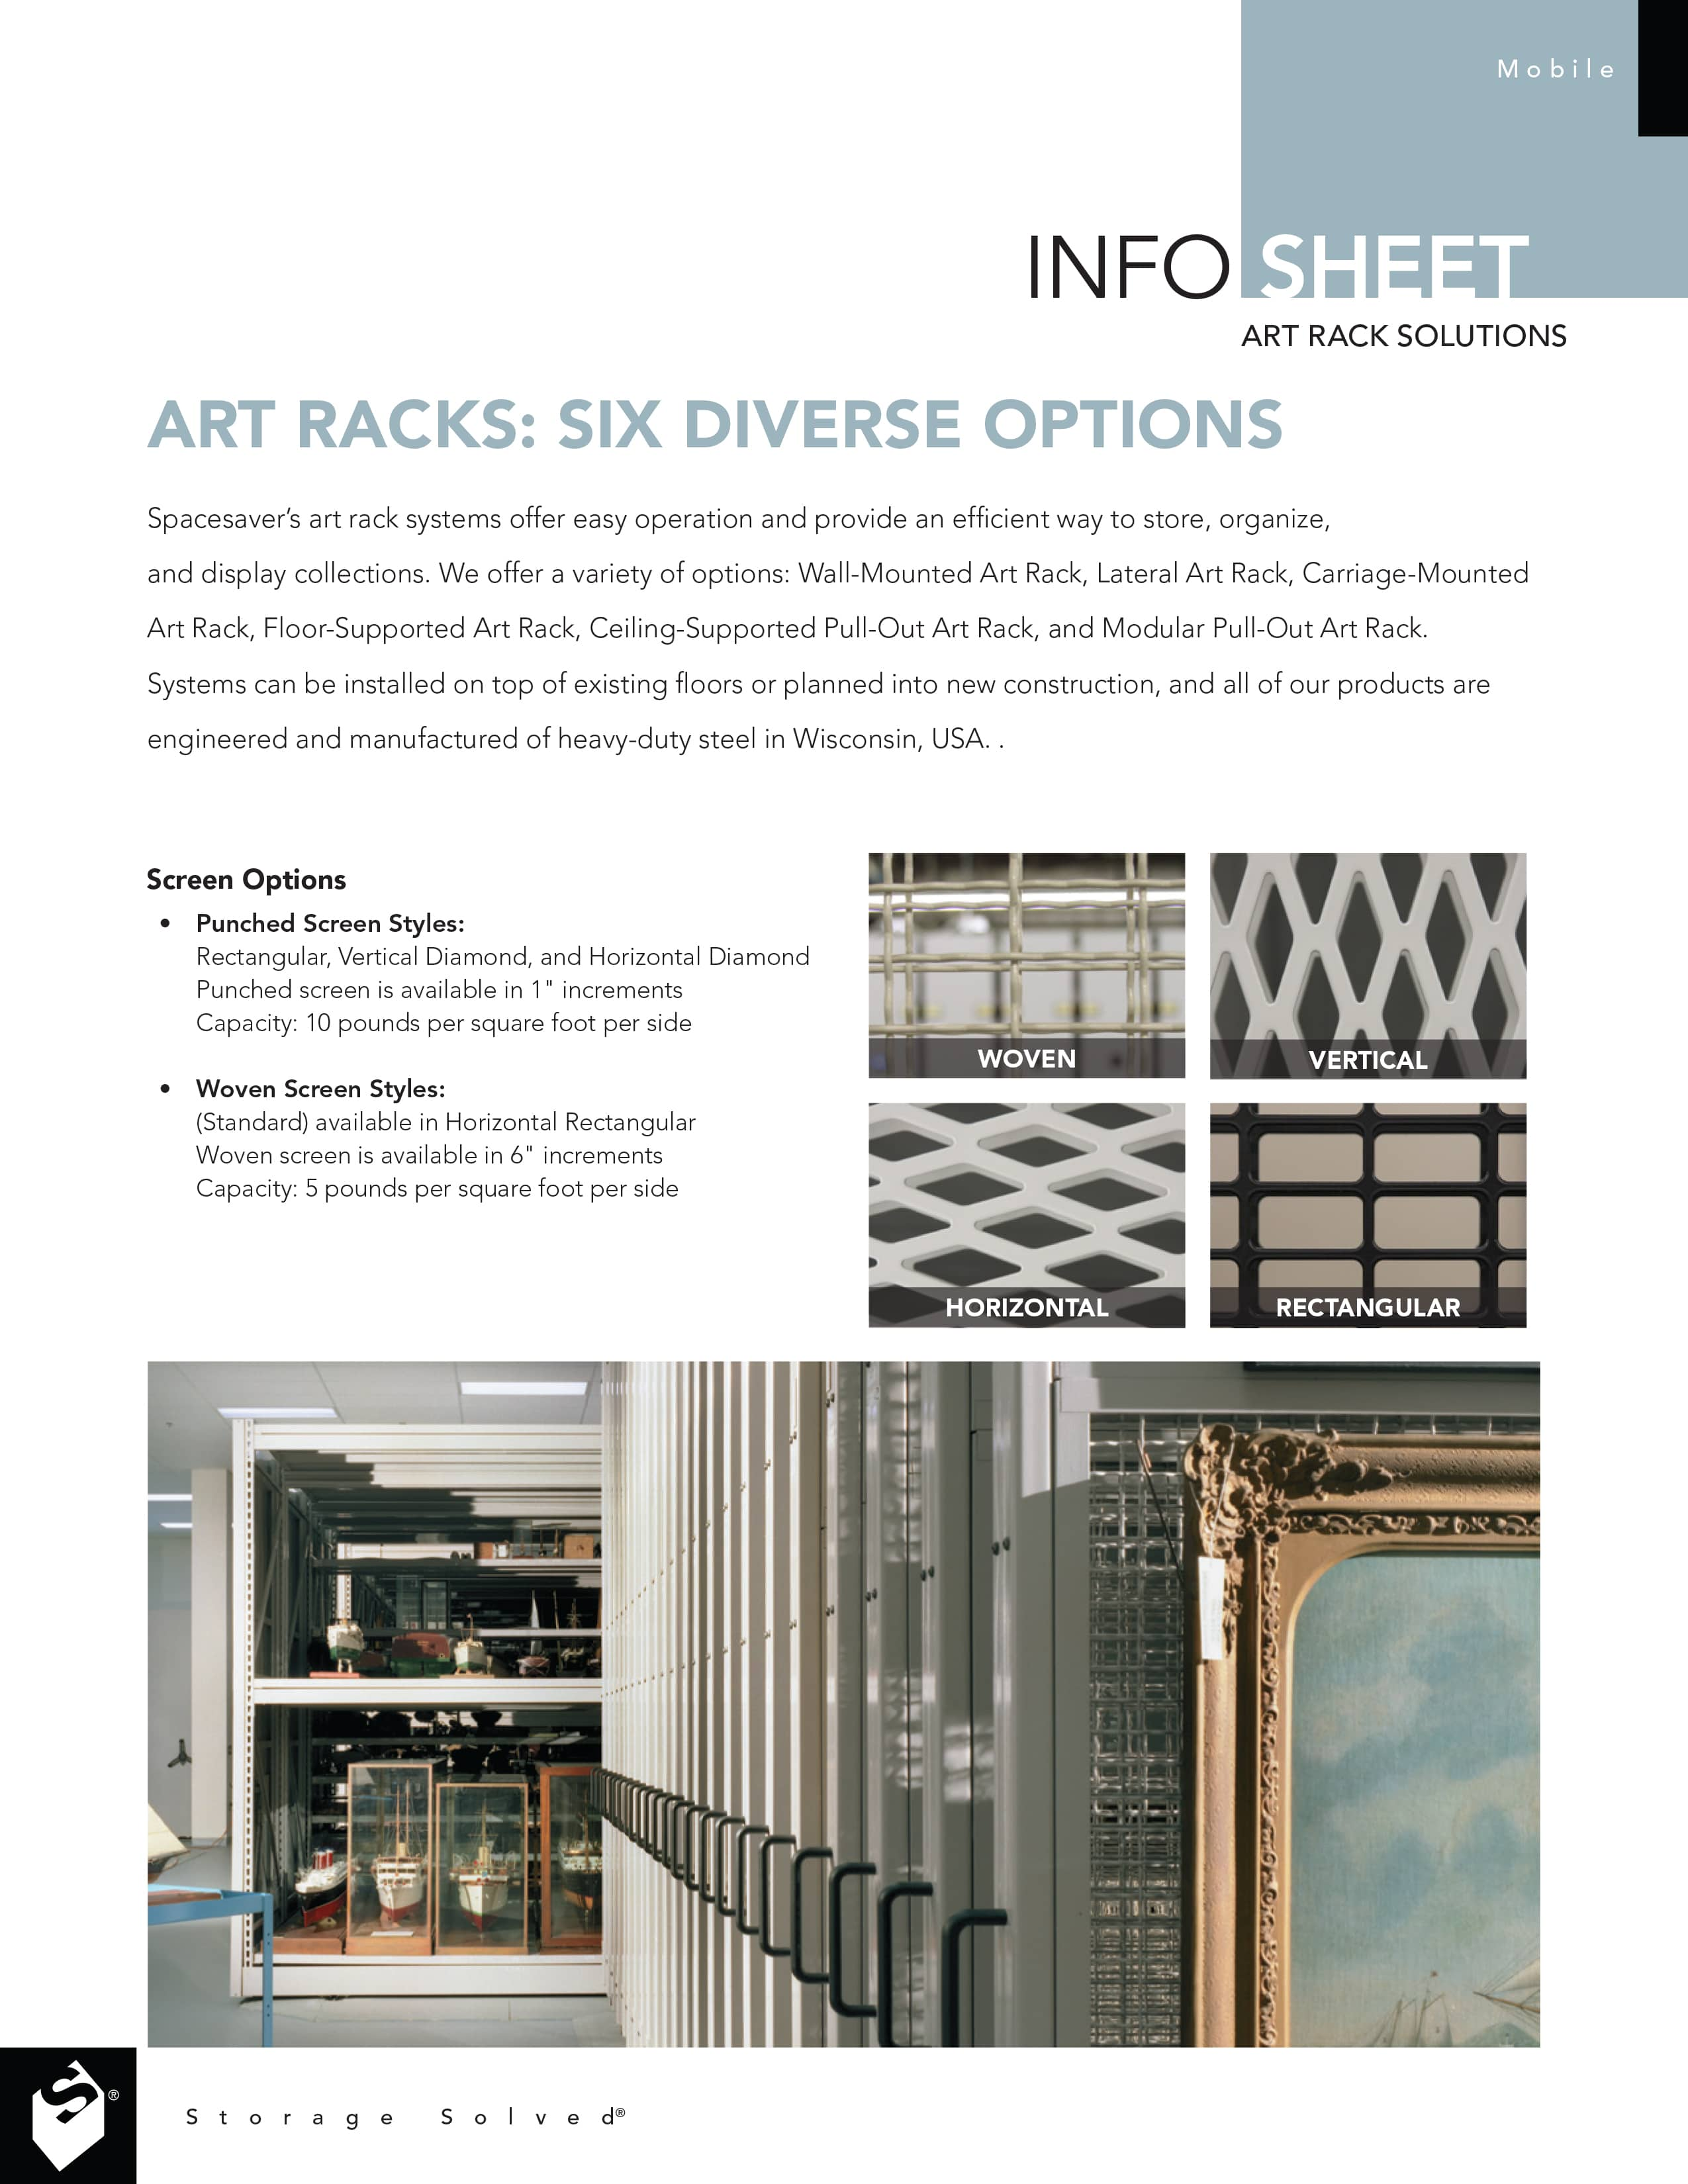 Six Art Rack Options Brochure